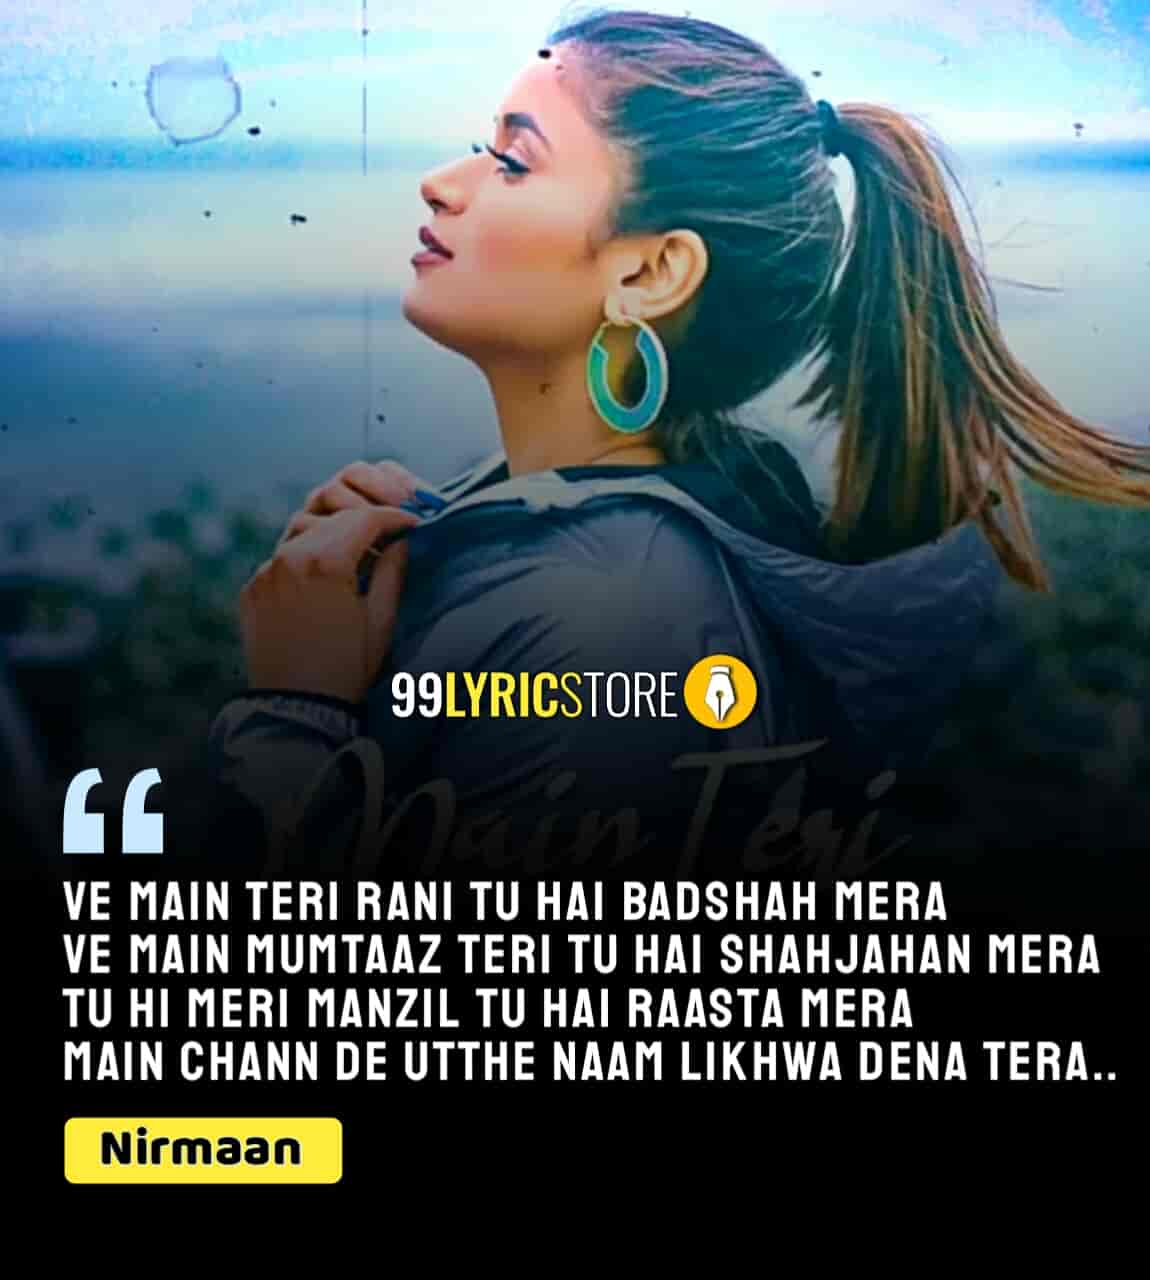 Shipra Goyal back with her beautiful track which titled 'Main Teri Rani'. This is a latest punjabi song in the voice Shipra Goyal. Music of this song given by Abhijit Vaghani while this new song Main Teri Rani Lyrics is Nirmaan. This song video presented by T-Series label.